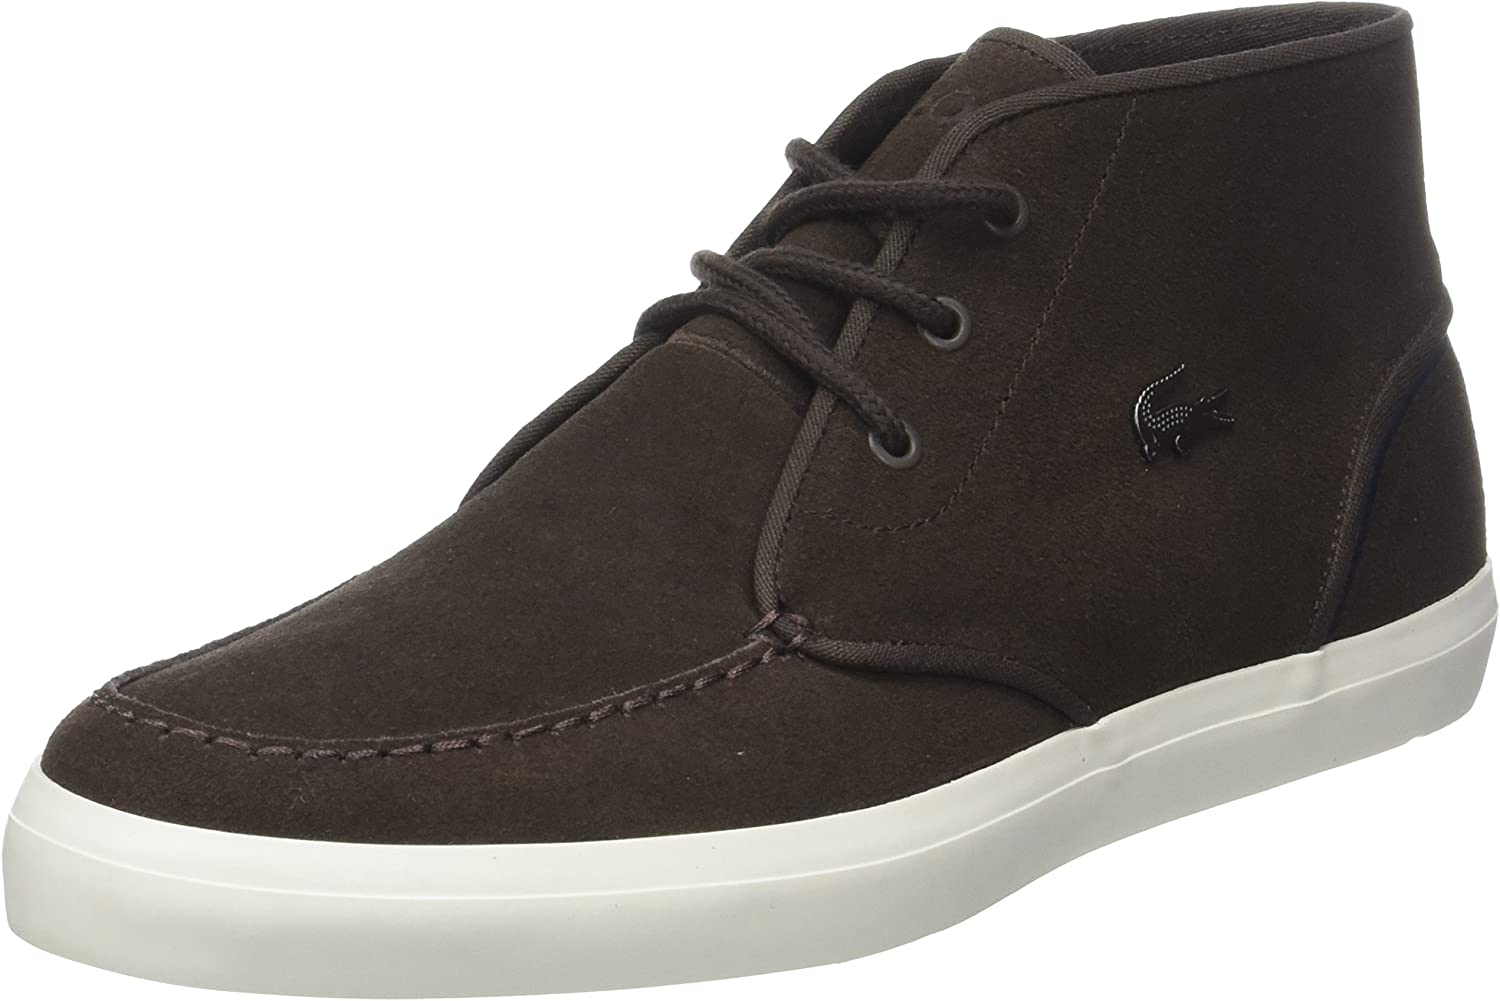 Lacoste Men's Sevrin Mid 317 1 High-top Trainers